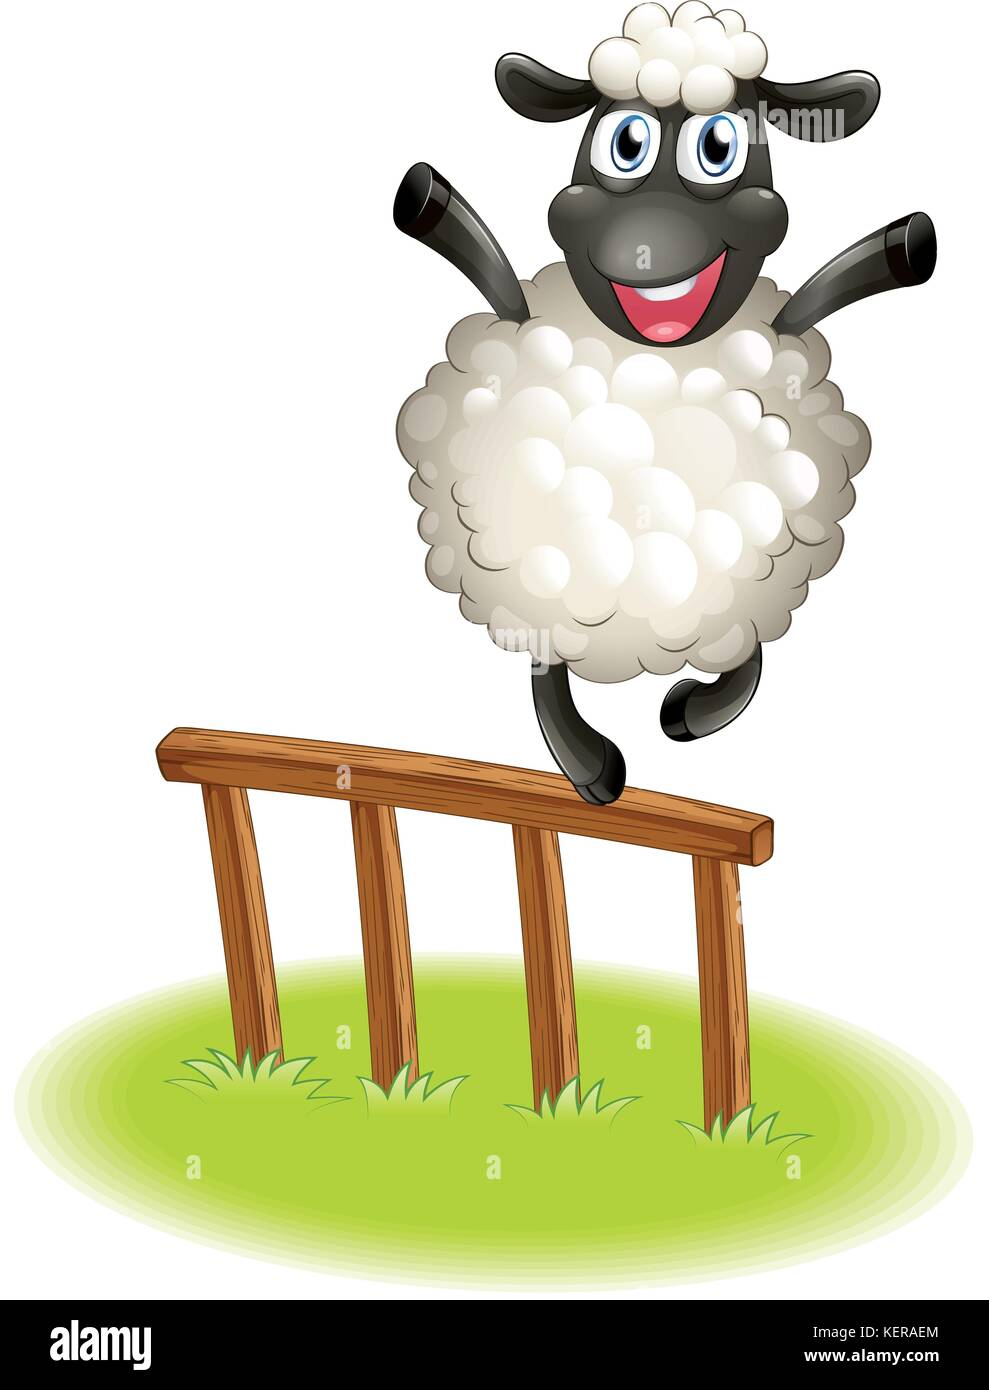 Illustration of a sheep standing above the wooden fence on a white background - Stock Vector